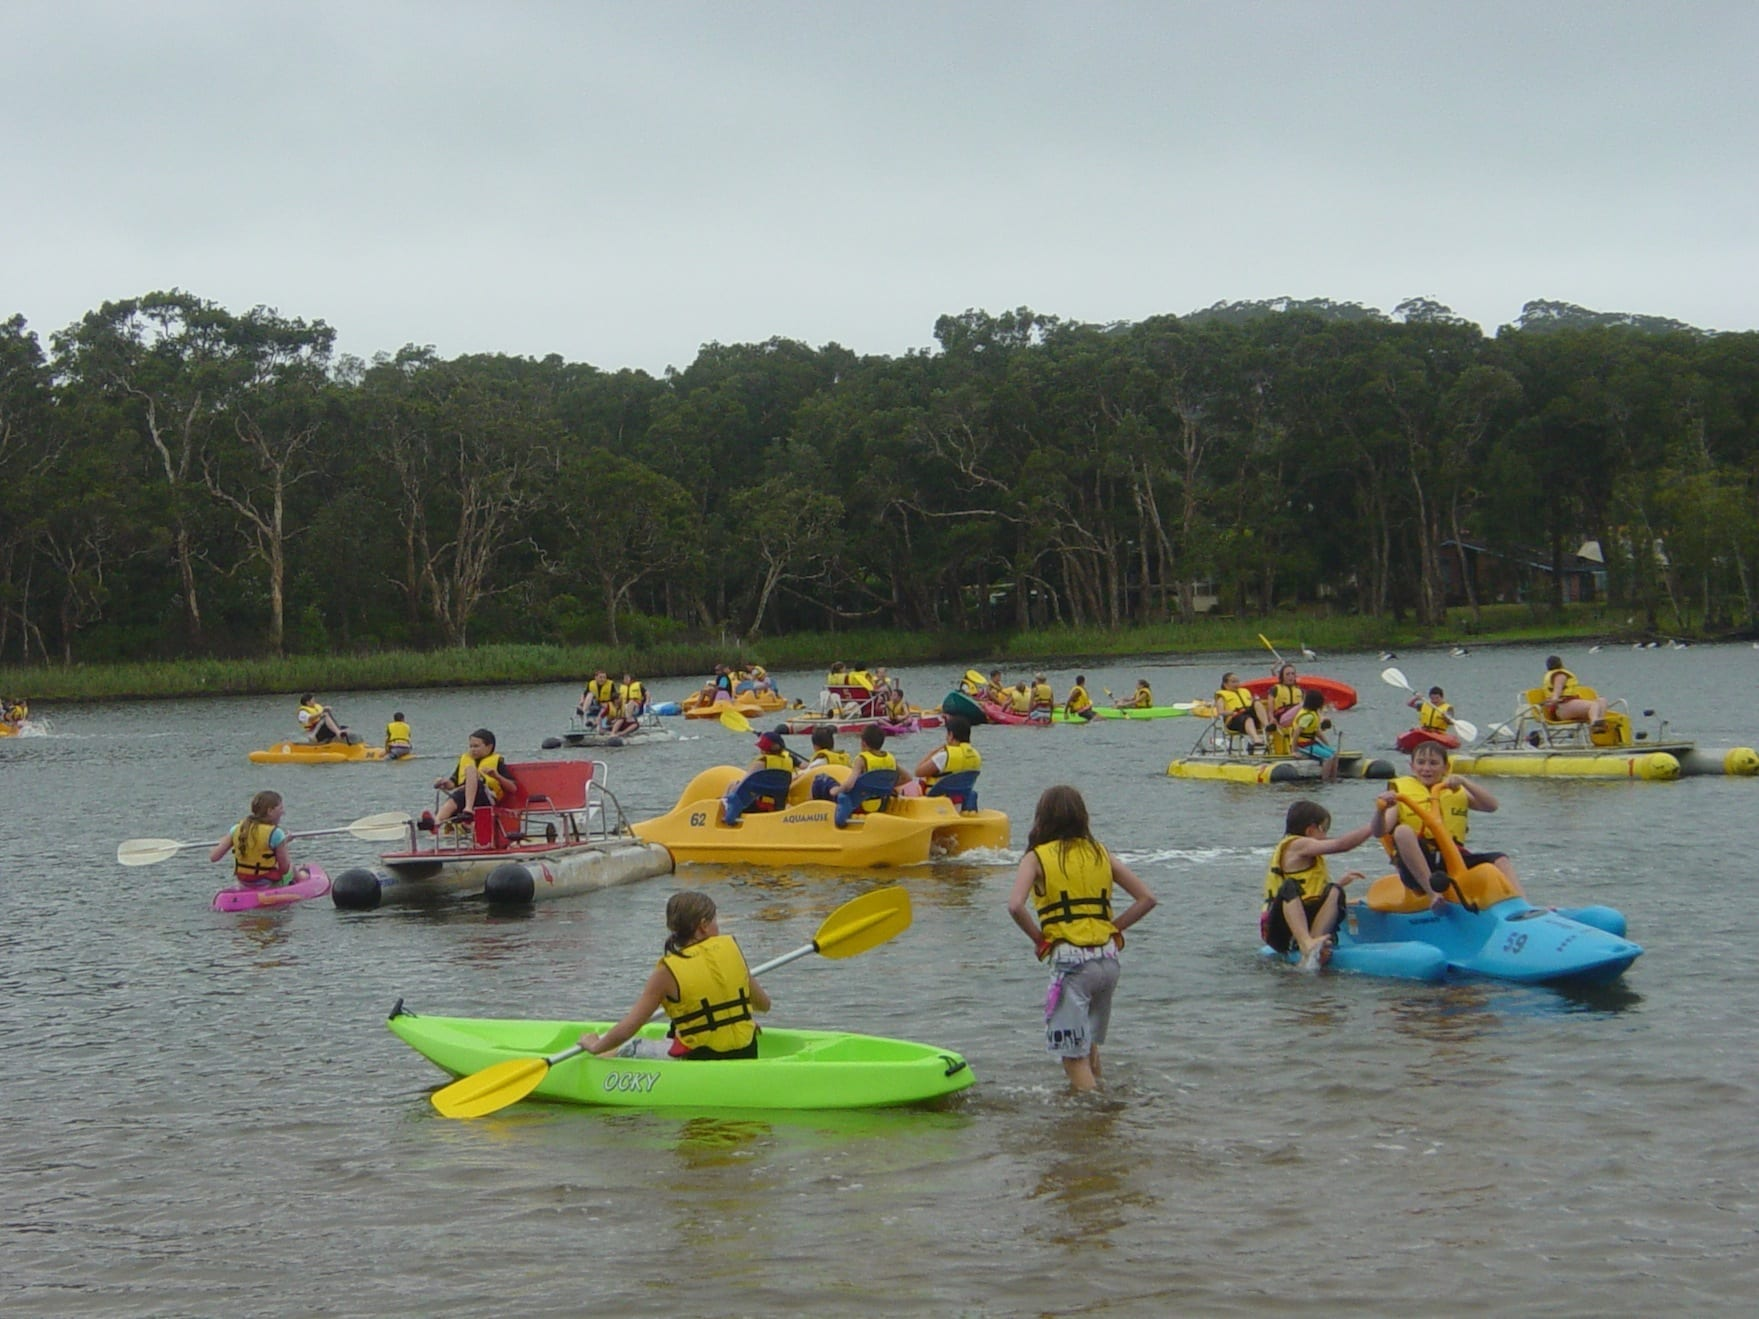 A large group of kids on the water at Aquafun Avoca Lake